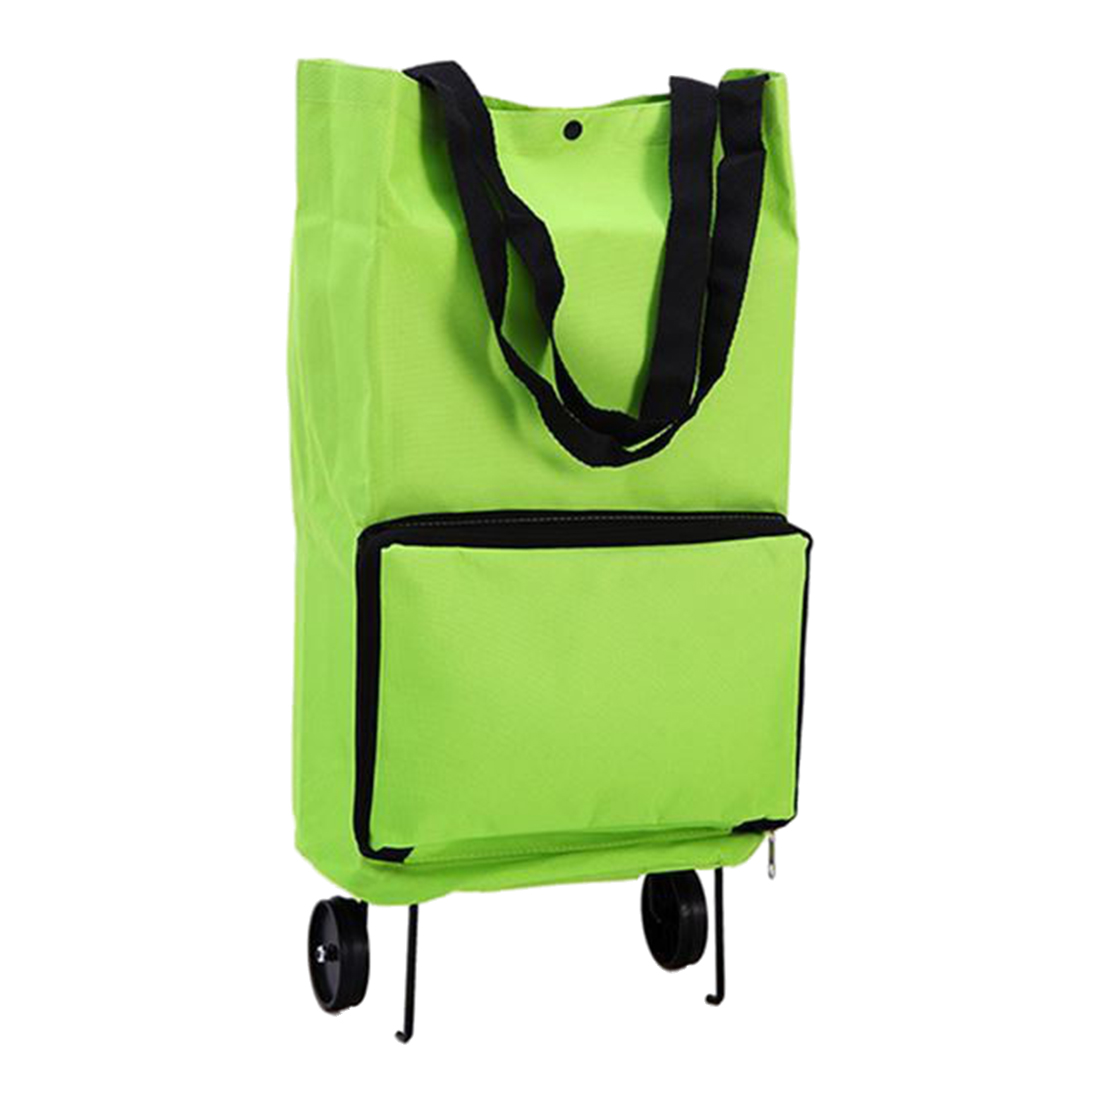 FGGS Portable Shopping Trolley Bag With Wheels Foldable Cart Rolling Grocery Green